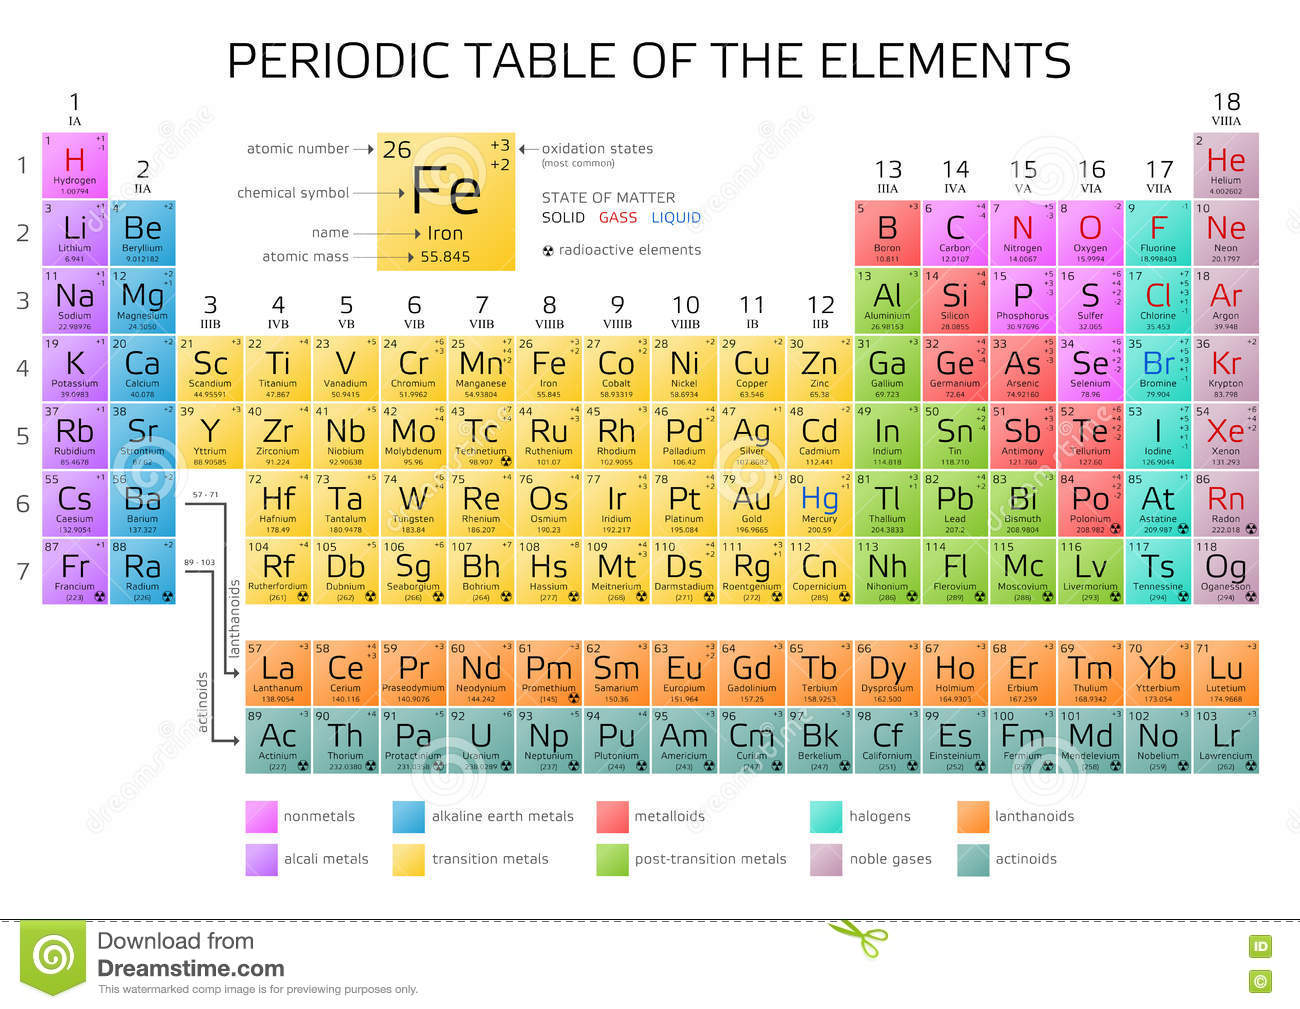 Mendeleevs periodic table of elements with new elements 2016 mendeleevs periodic table of elements with new elements 2016 stock photos gamestrikefo Choice Image